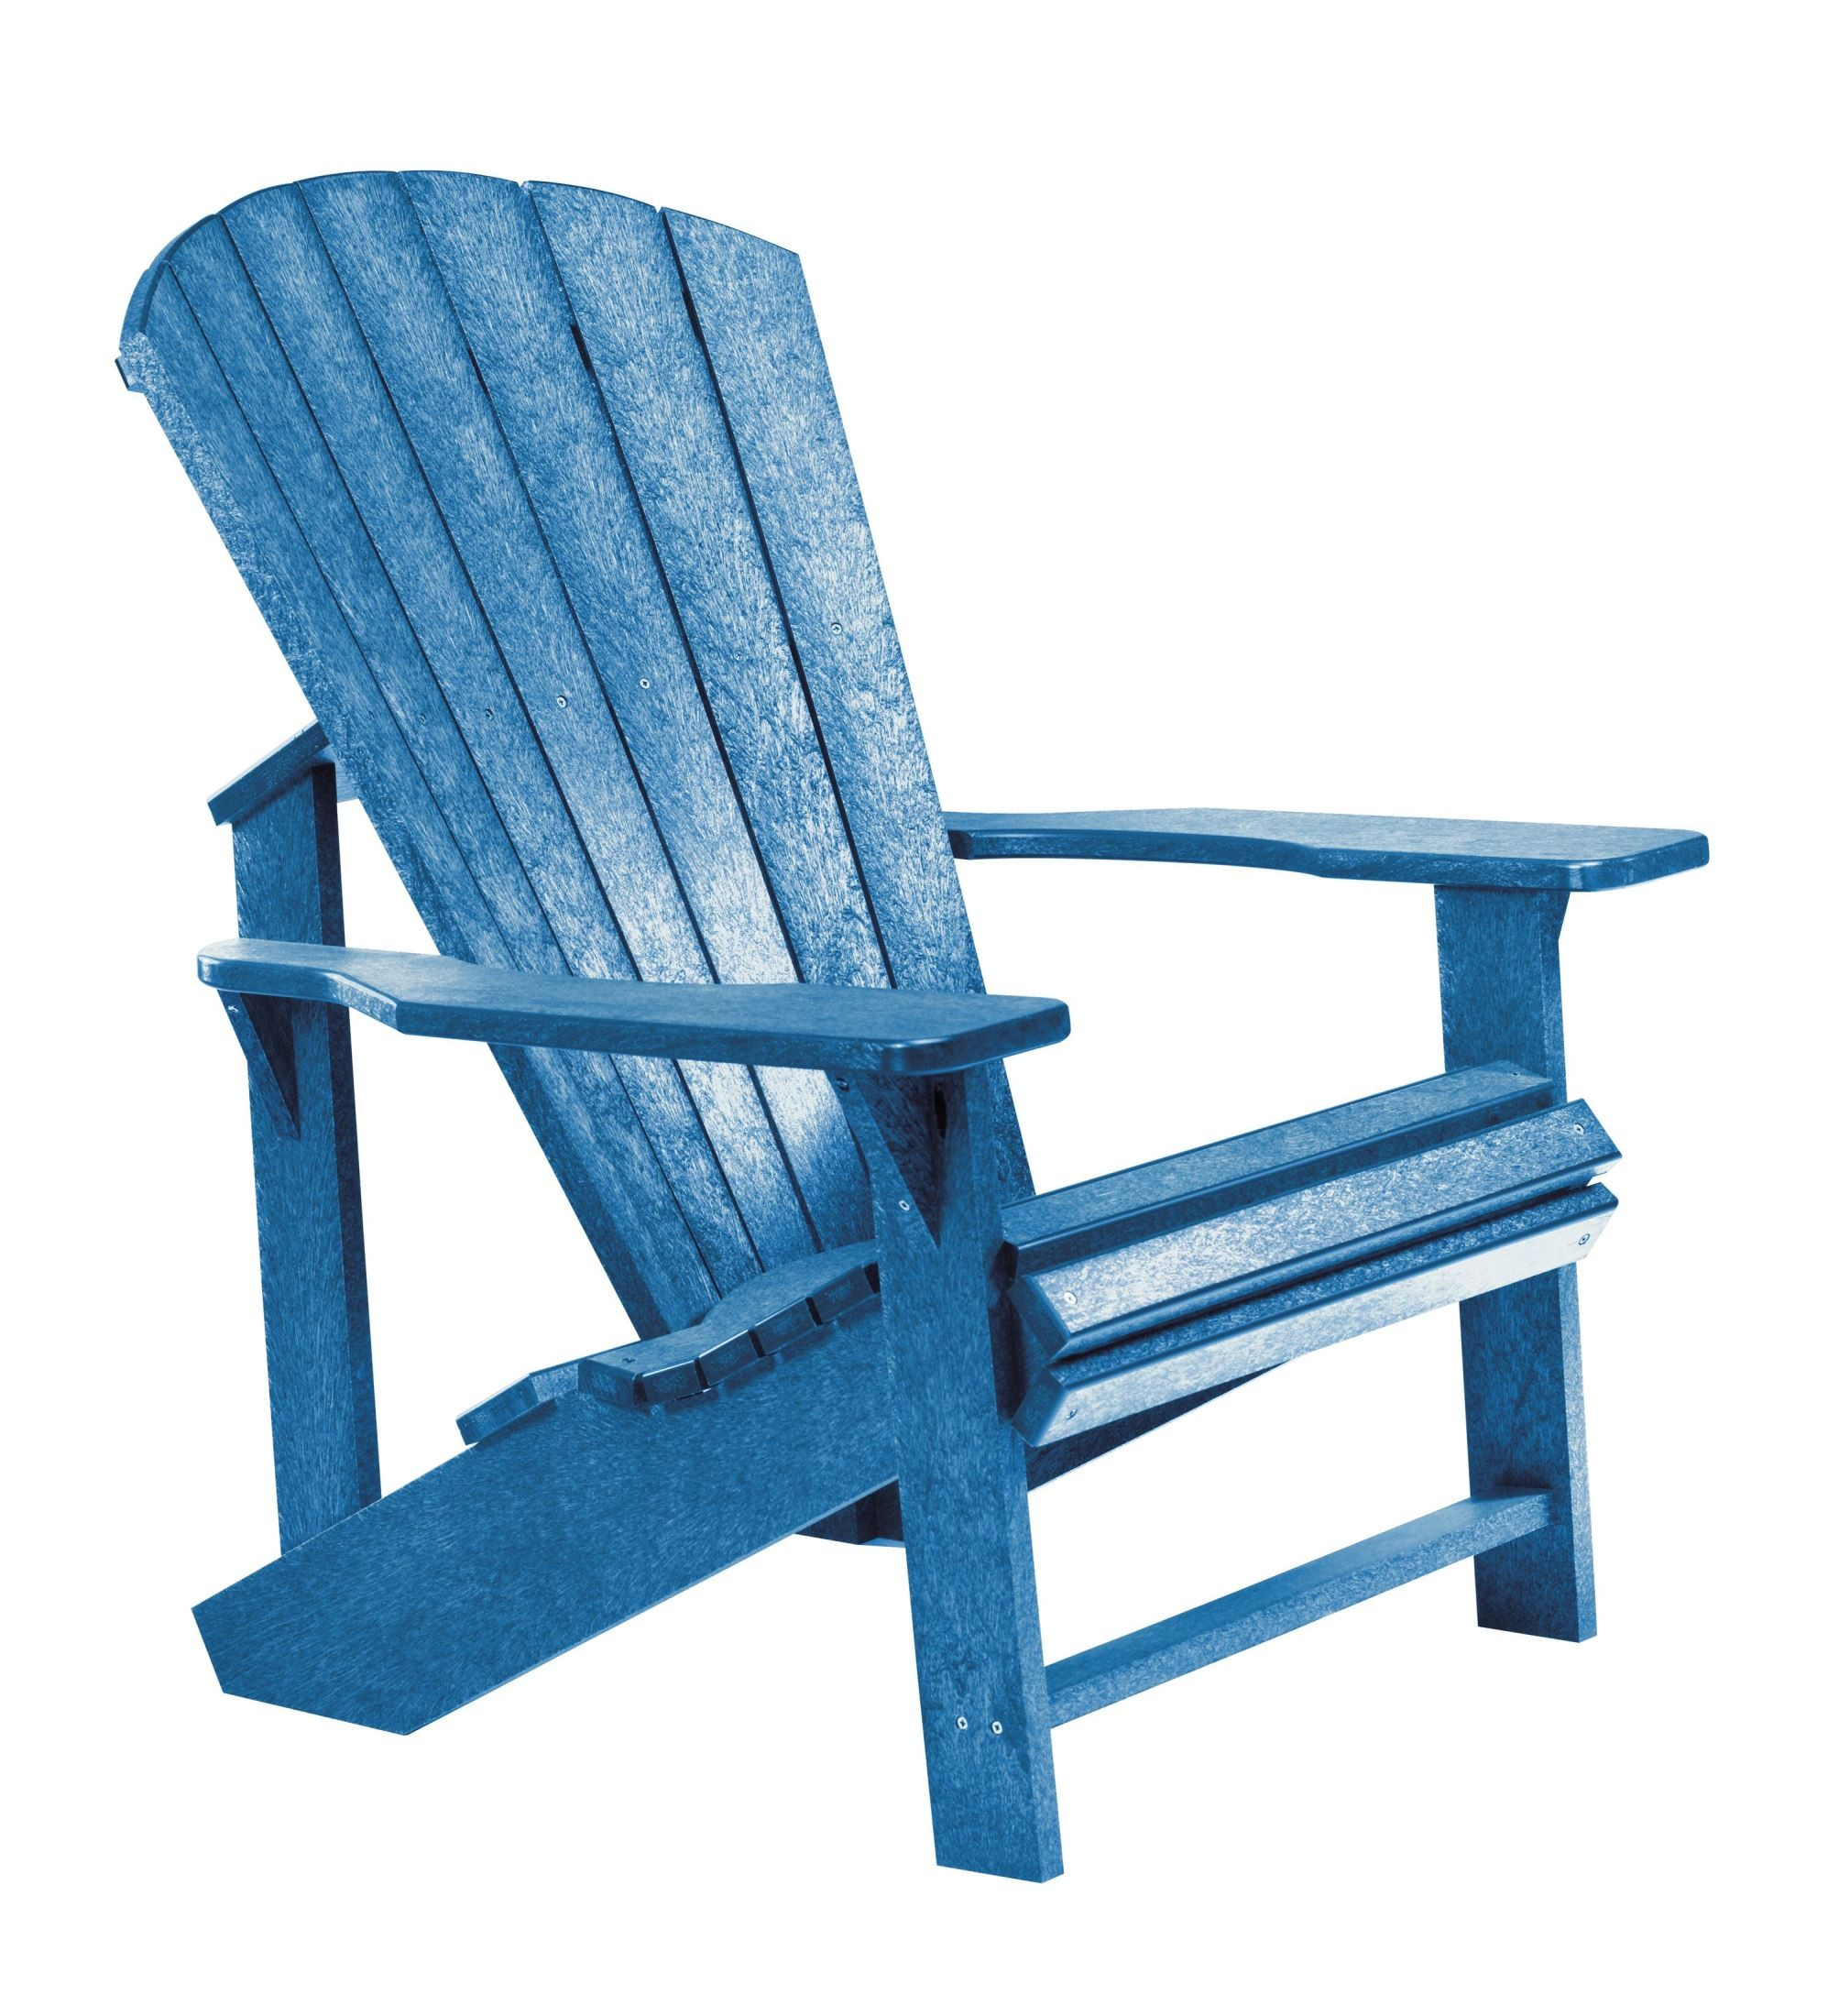 blue adirondack chair from cr plastic c01 03 coleman furniture